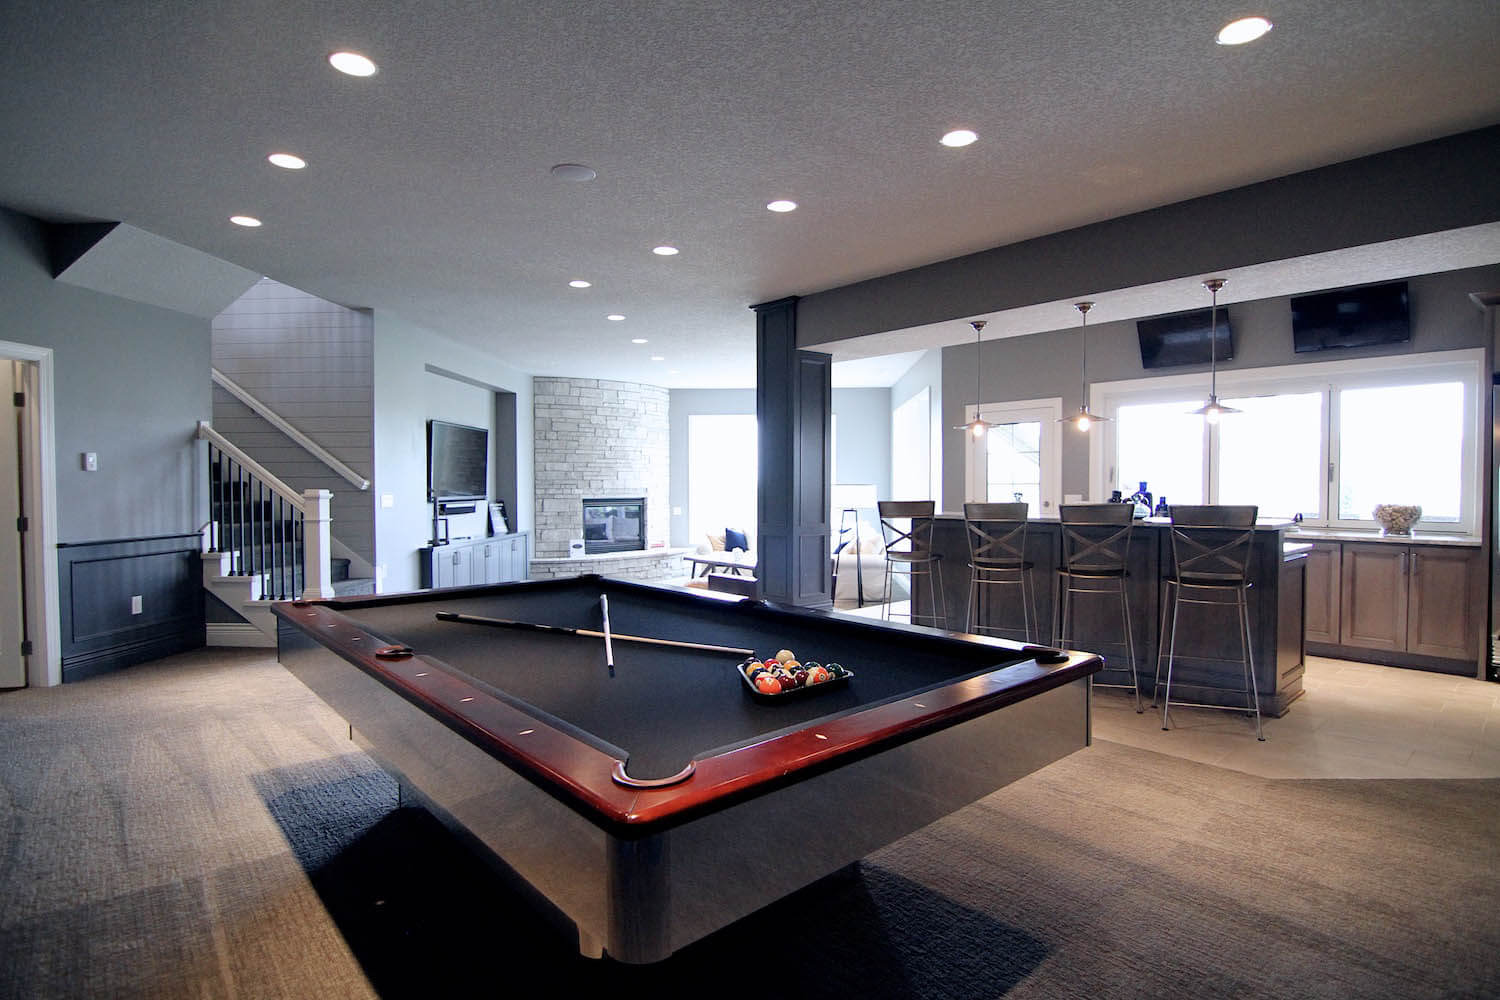 Pool table in a finished basement